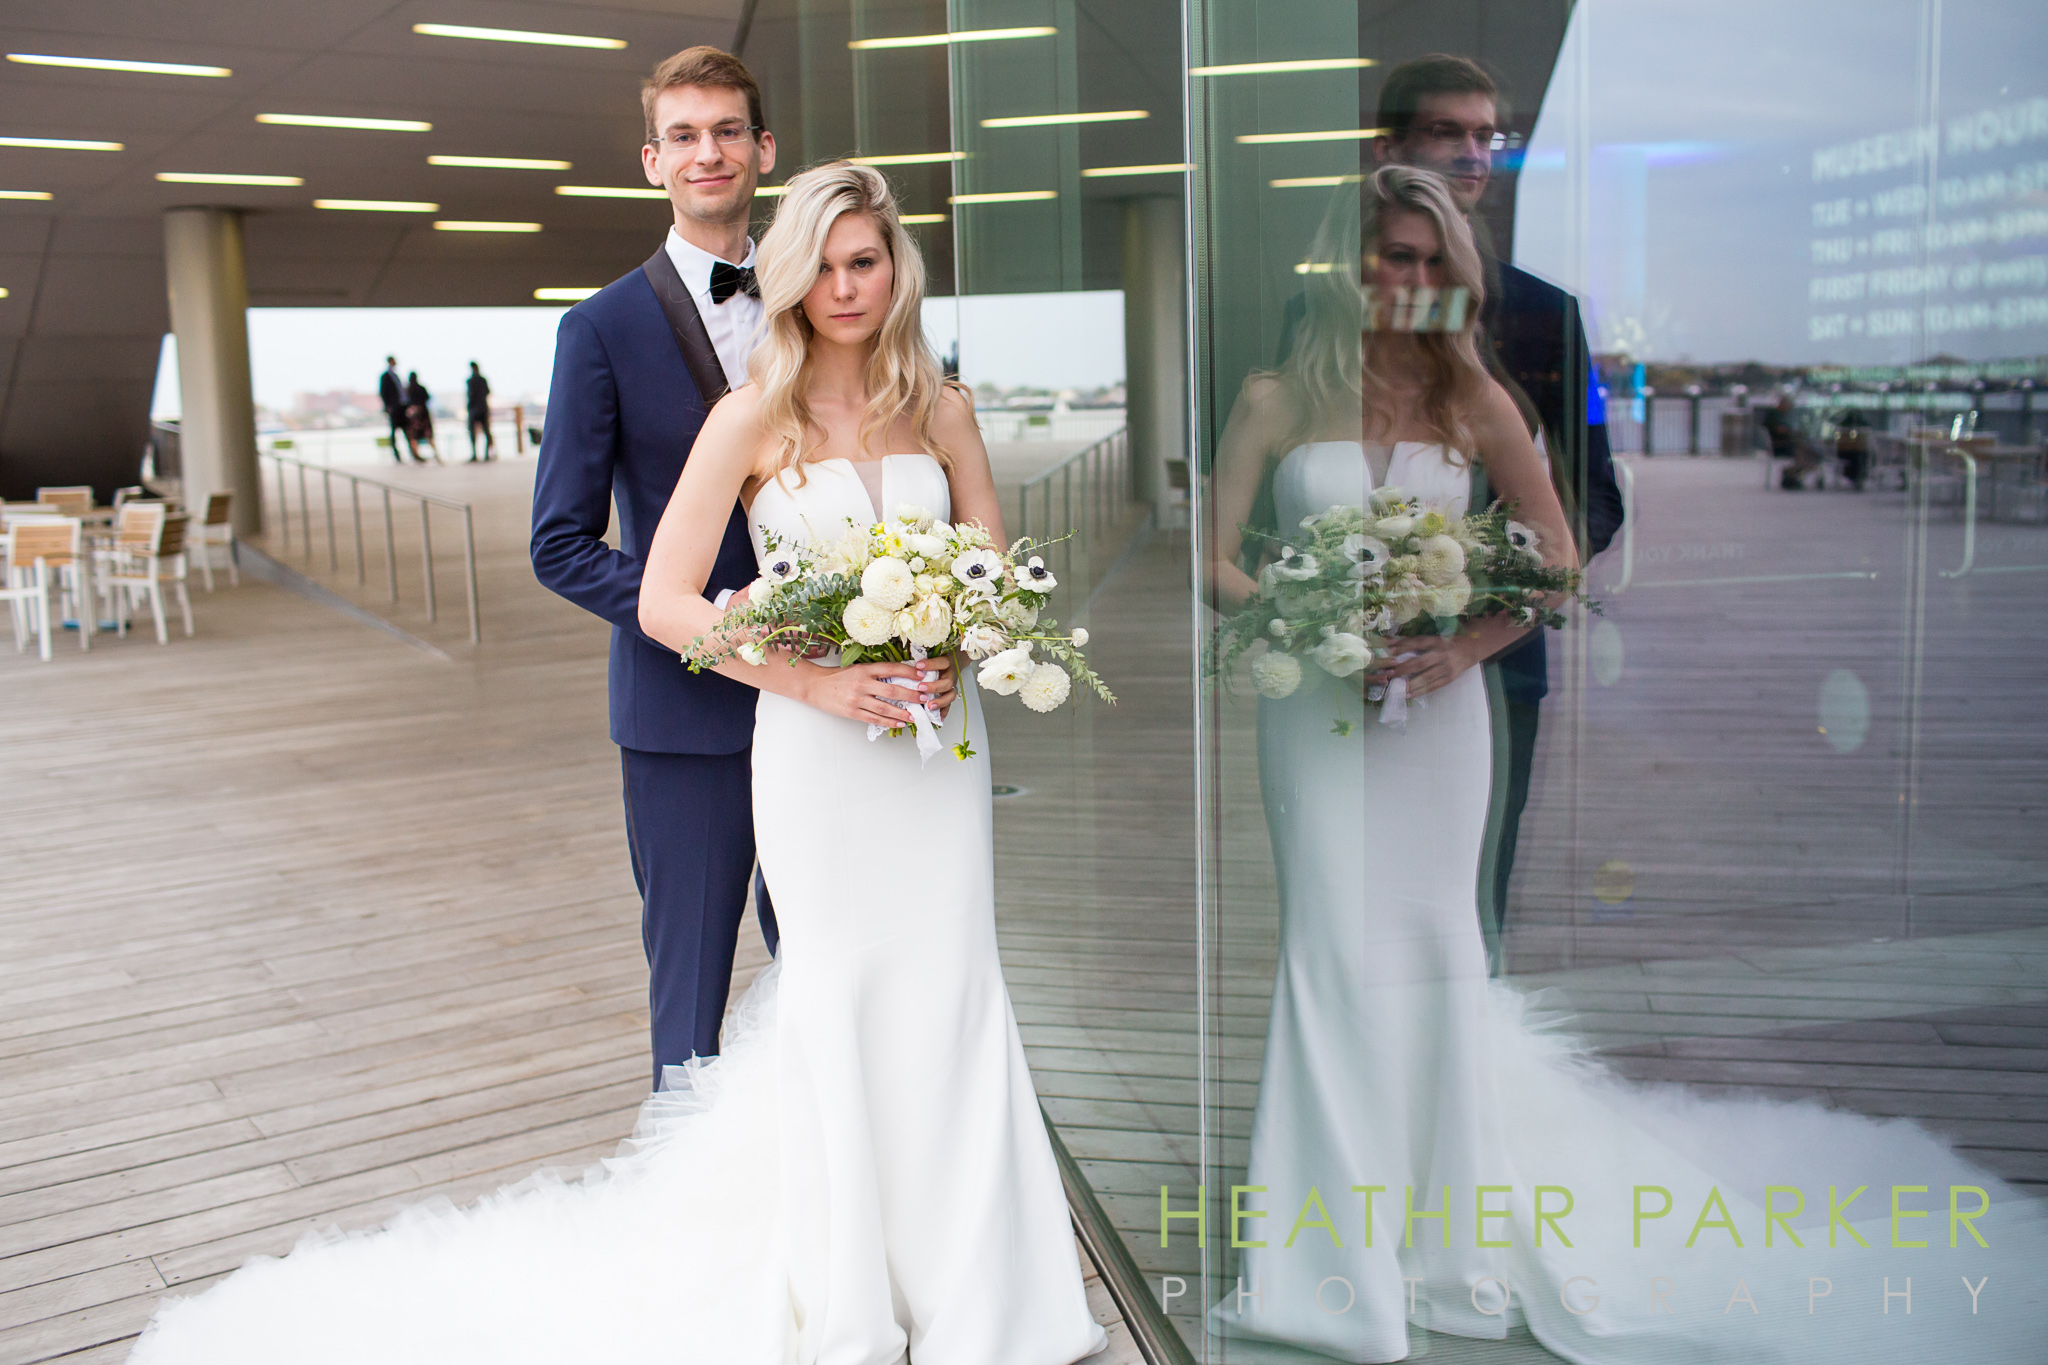 ICA Boston wedding venue photos with newlyweds